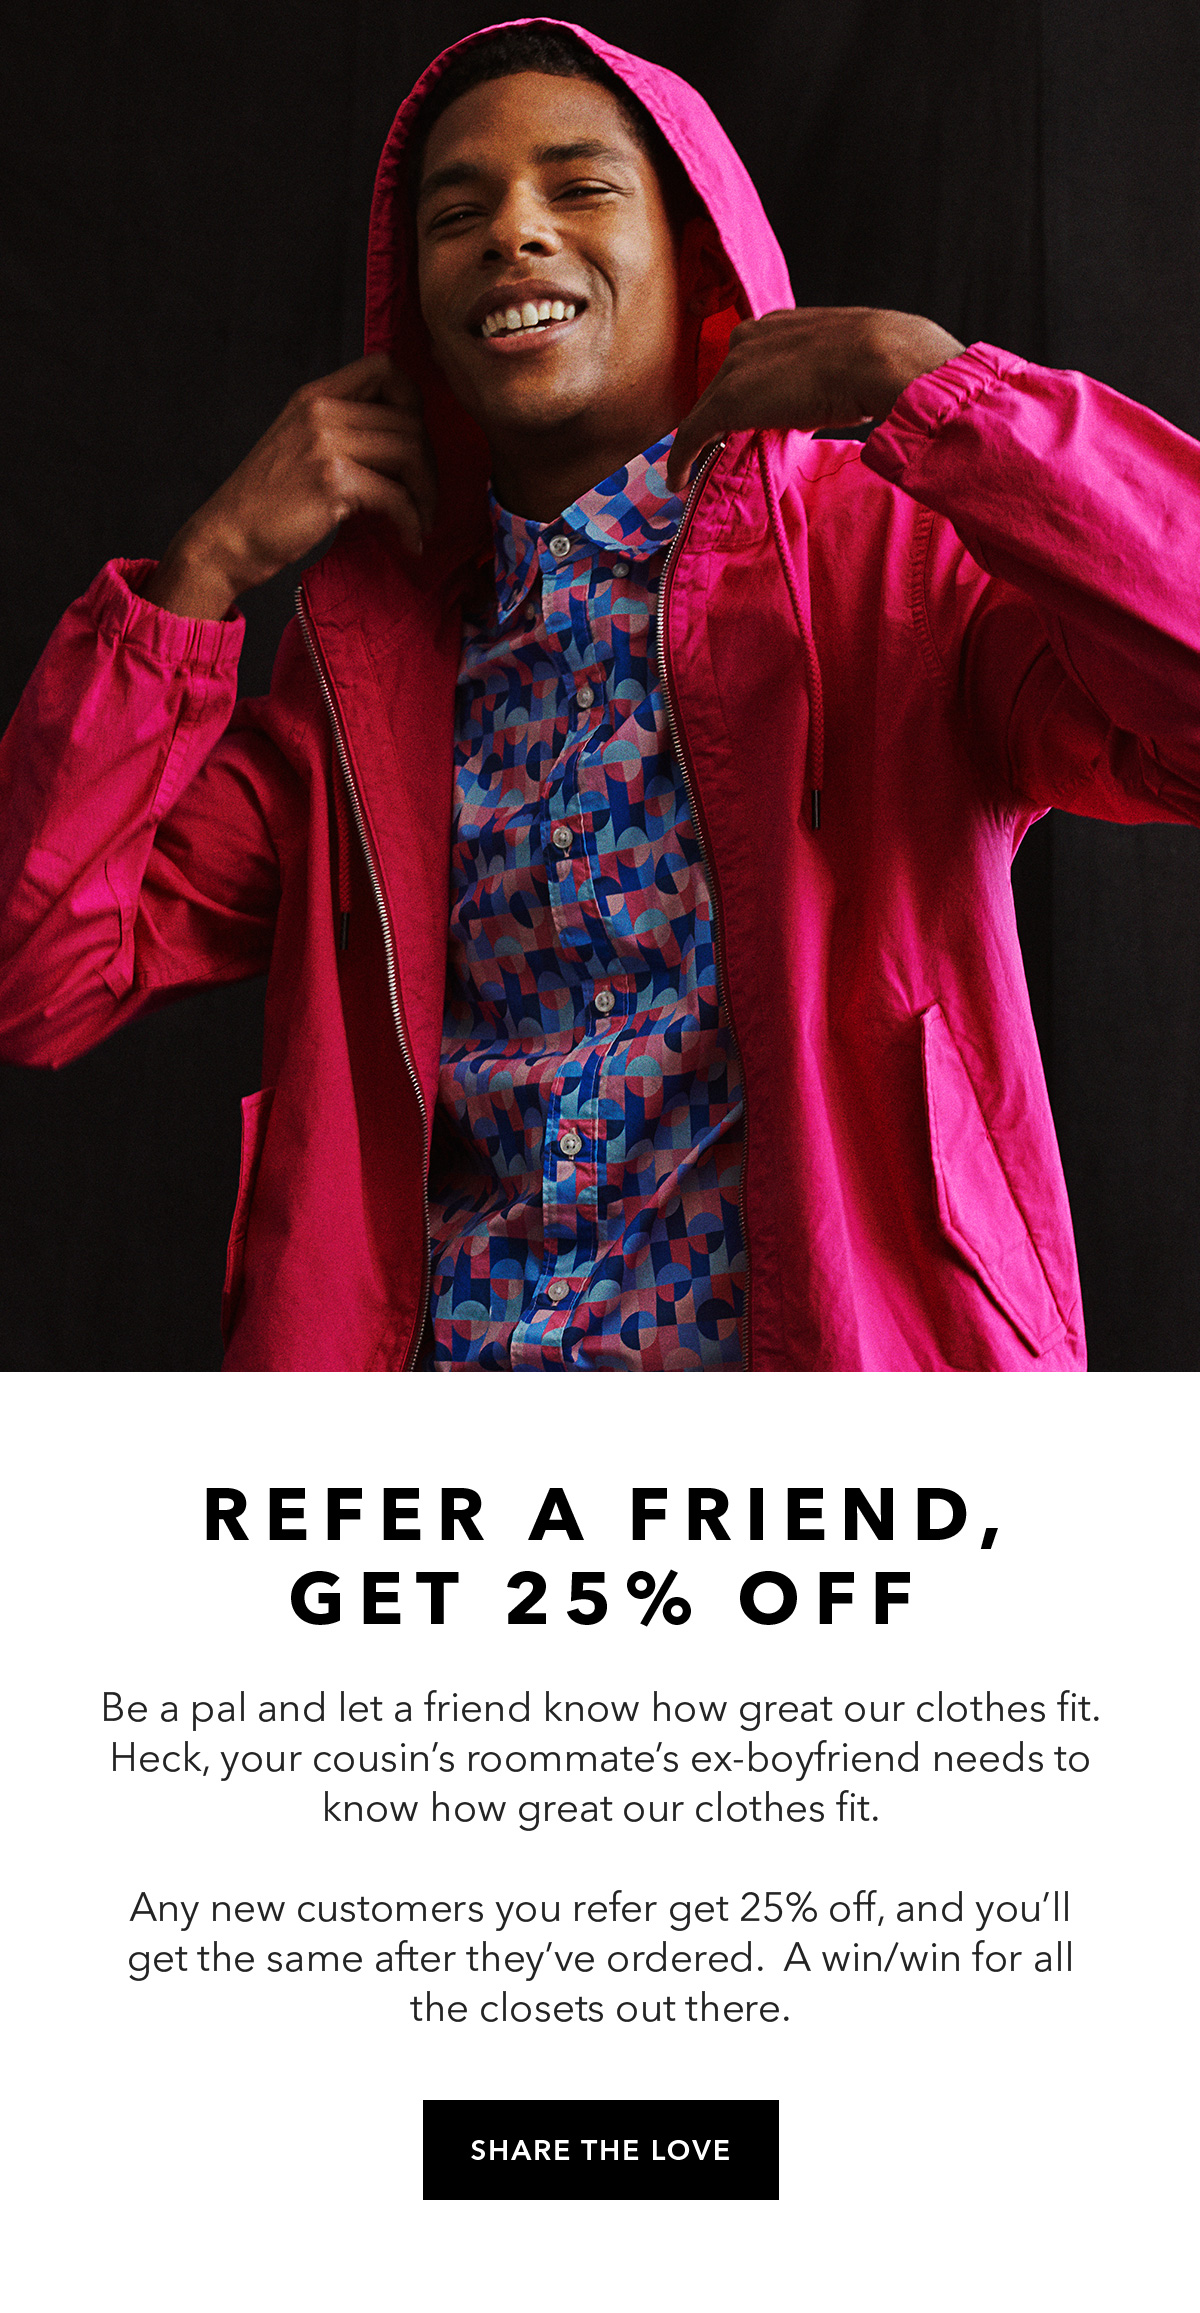 Refer a Friend, Get 25% Off /// Be a pal and let a friend know how great our clothes fit. Heck, your cousin's roommate's ex-boyfriend needs to know how great our clothes fit. Any new customers you refer get 25% off, and you'll get the same after they've ordered. A win/win for all the closets out there. /// SHARE THE LOVE →